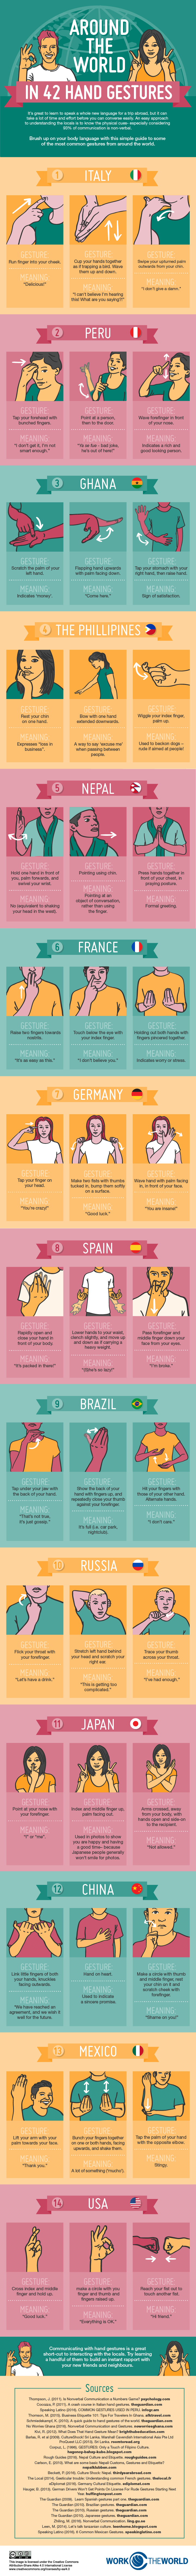 What is the Meaning of Hand Gestures in Various Parts of the World? #infographic